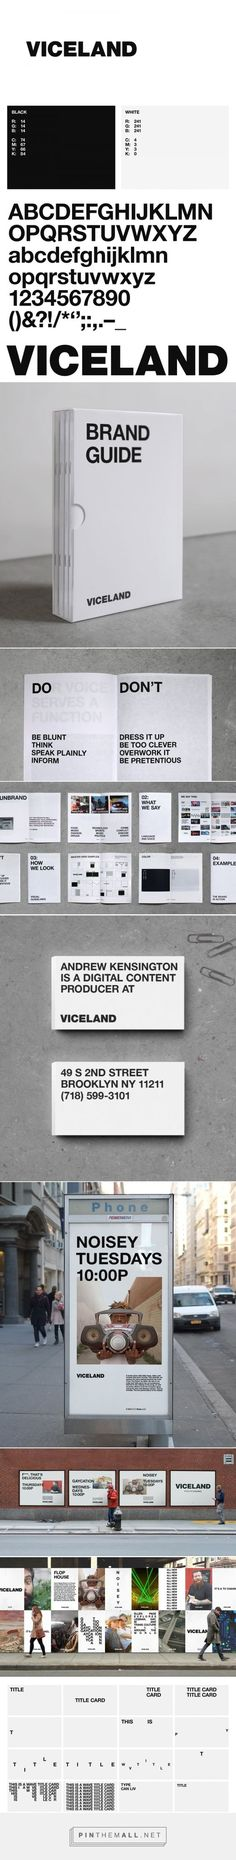 VICELAND Brand Guidelines. Simple and True. (and beautiful too)